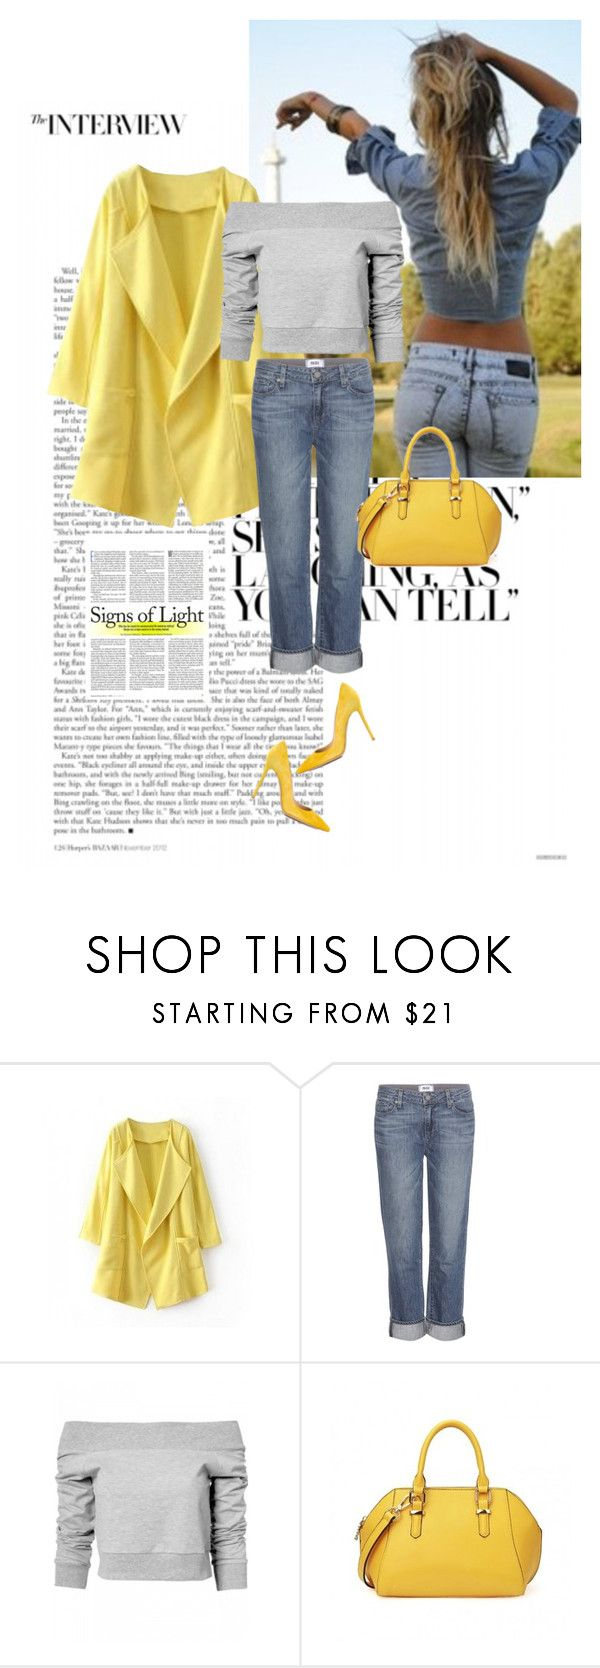 """""""Shine bright..............."""" by style-stories ❤ liked on Polyvore featuring Paige Denim and Gianvito Rossi"""